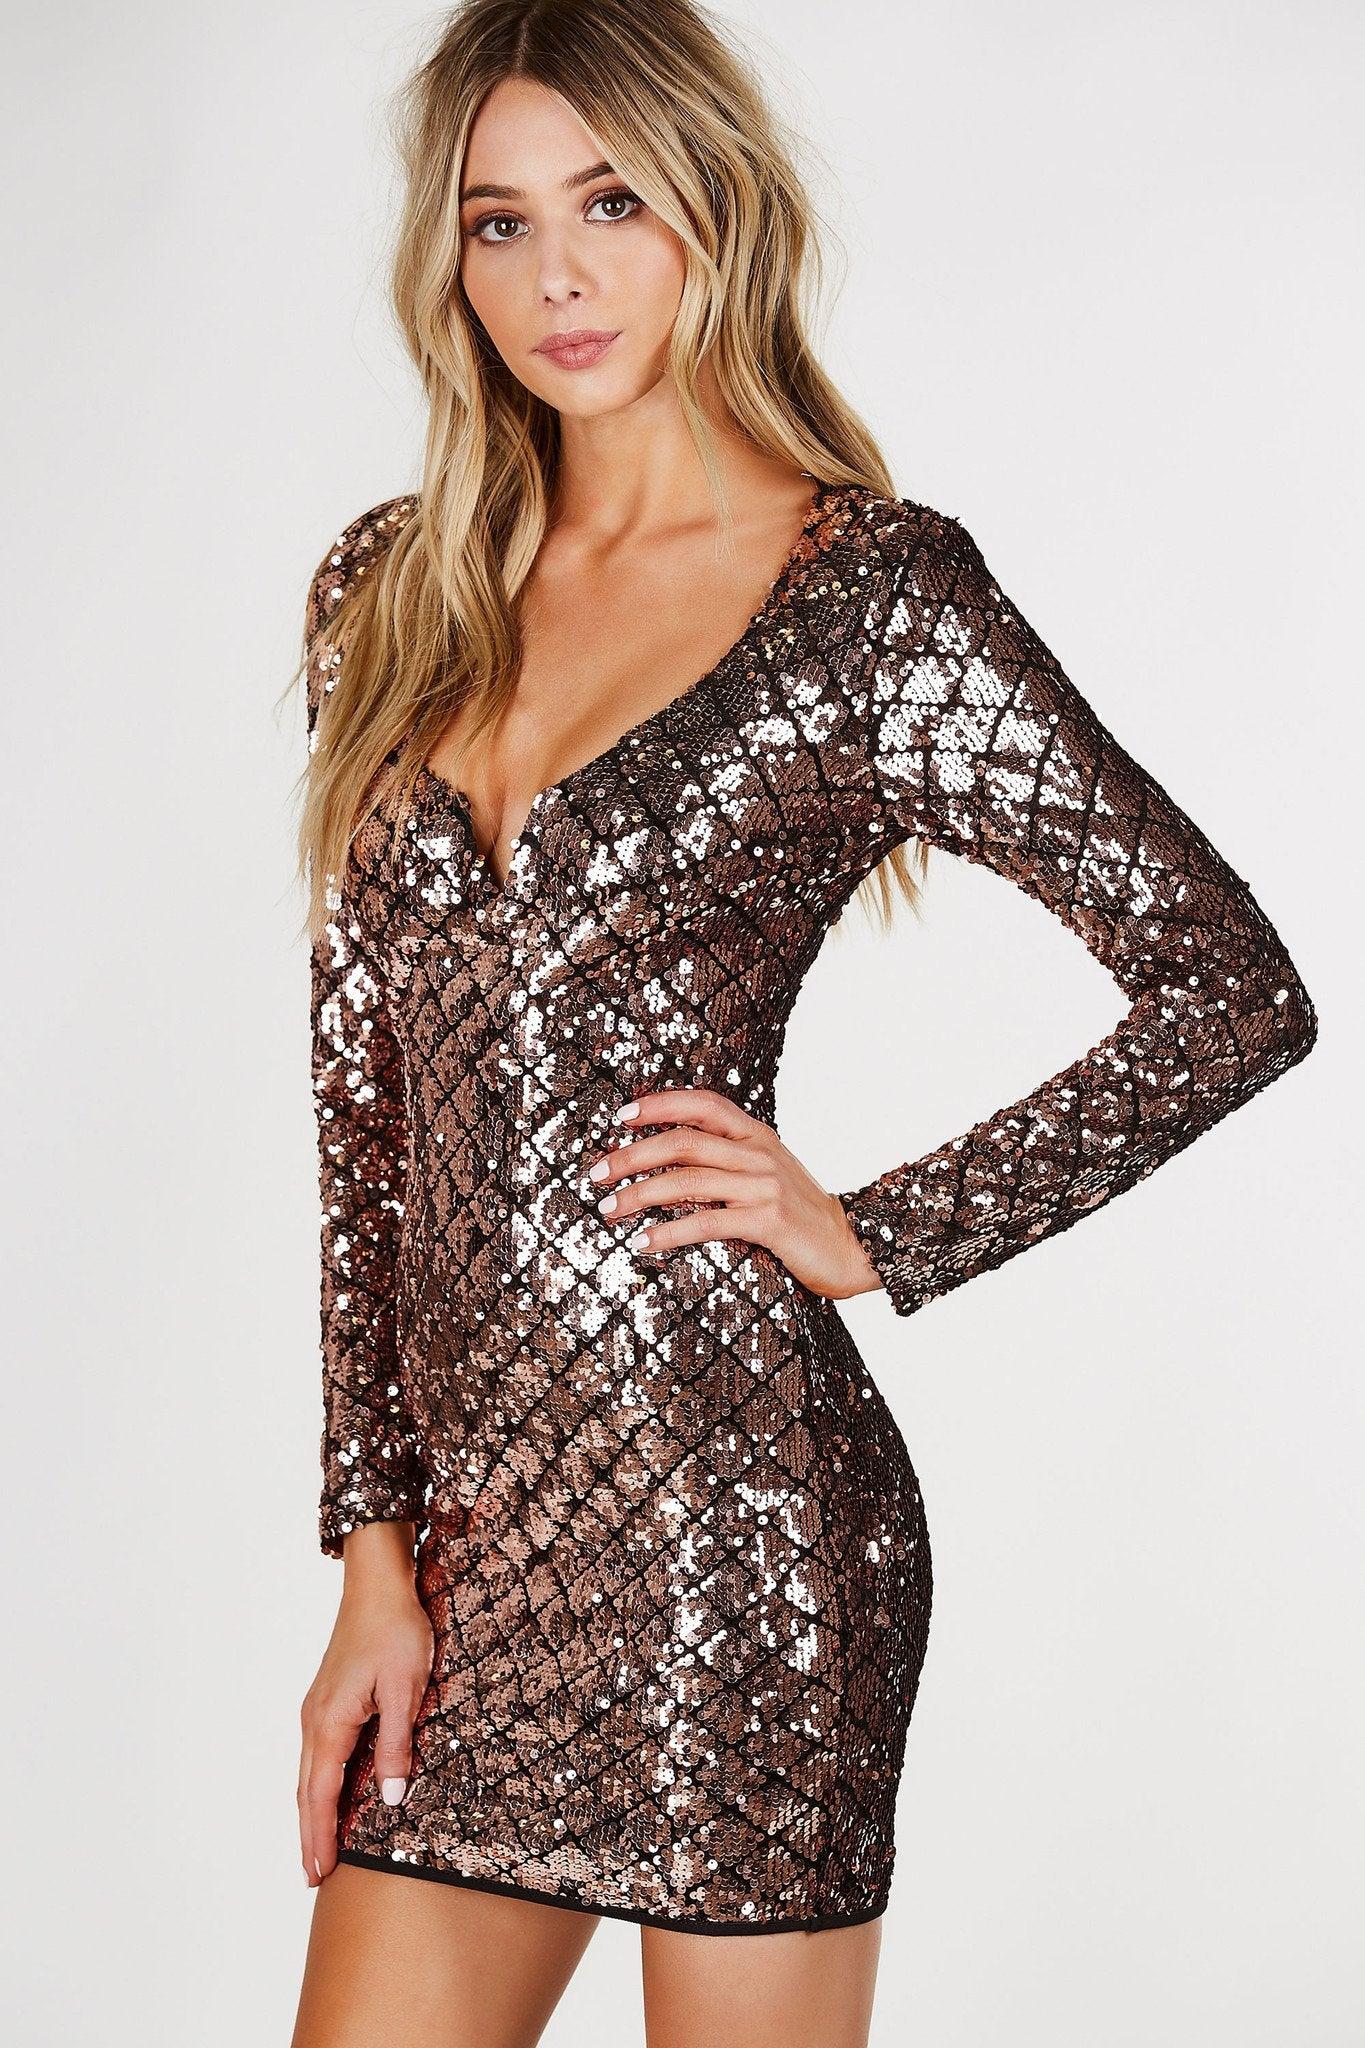 Sparks Fly Sequin Mini Dress